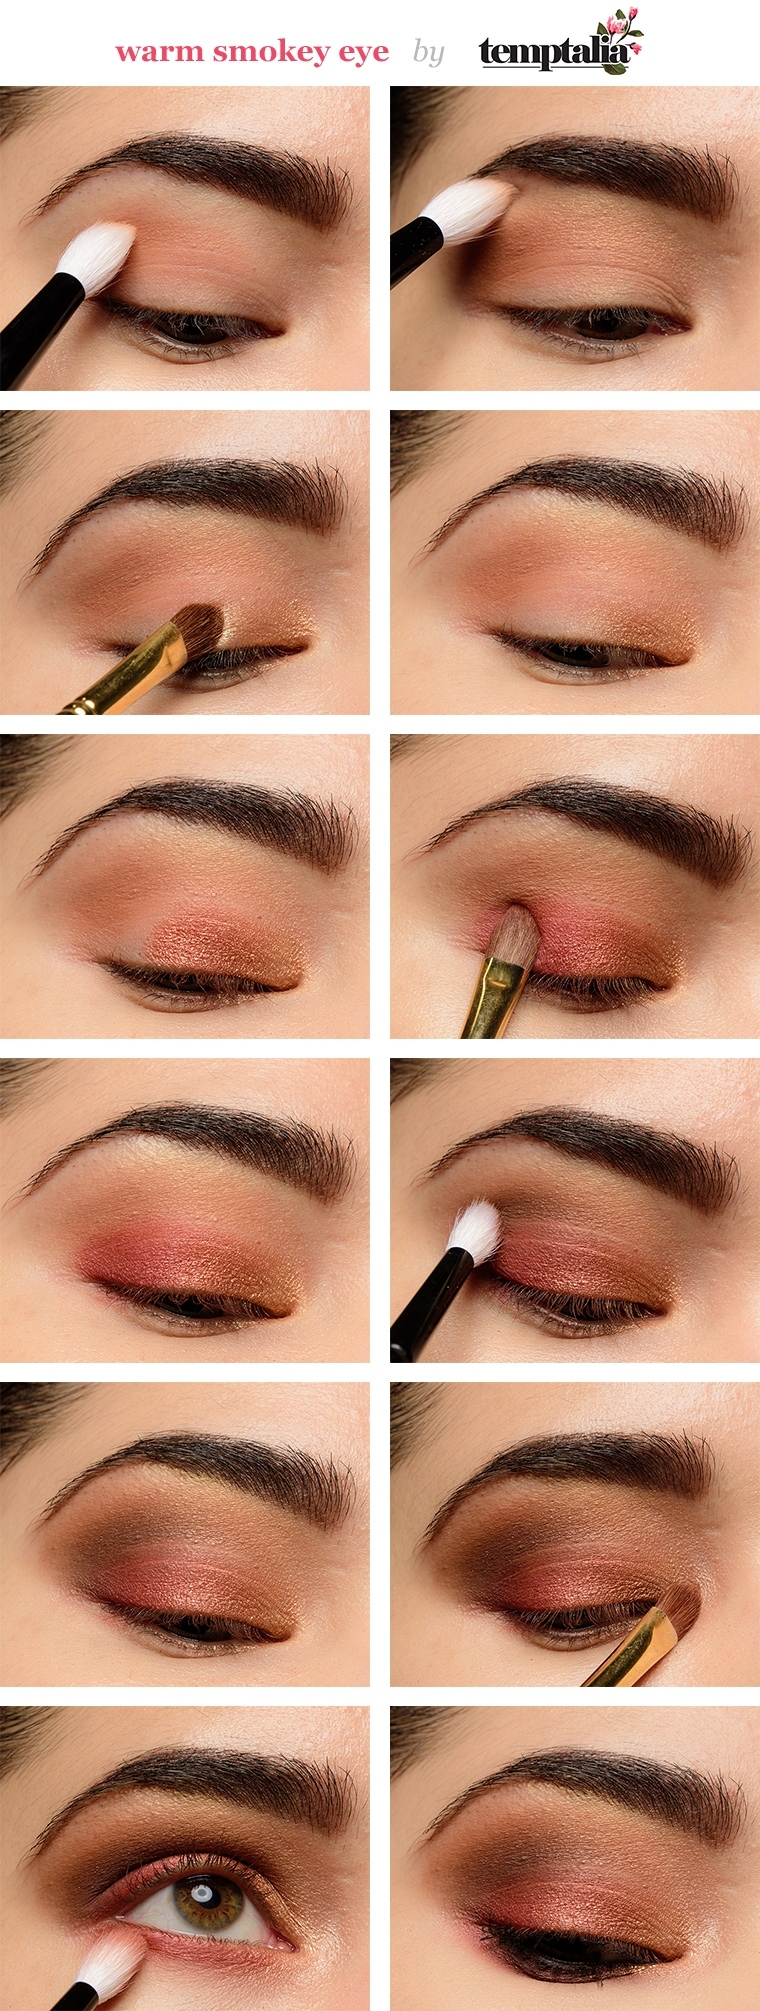 How To Apply Eyeshadow: Smokey Eye Makeup Tutorial For Beginners within How To Apply Smokey Eye Makeup With Pictures